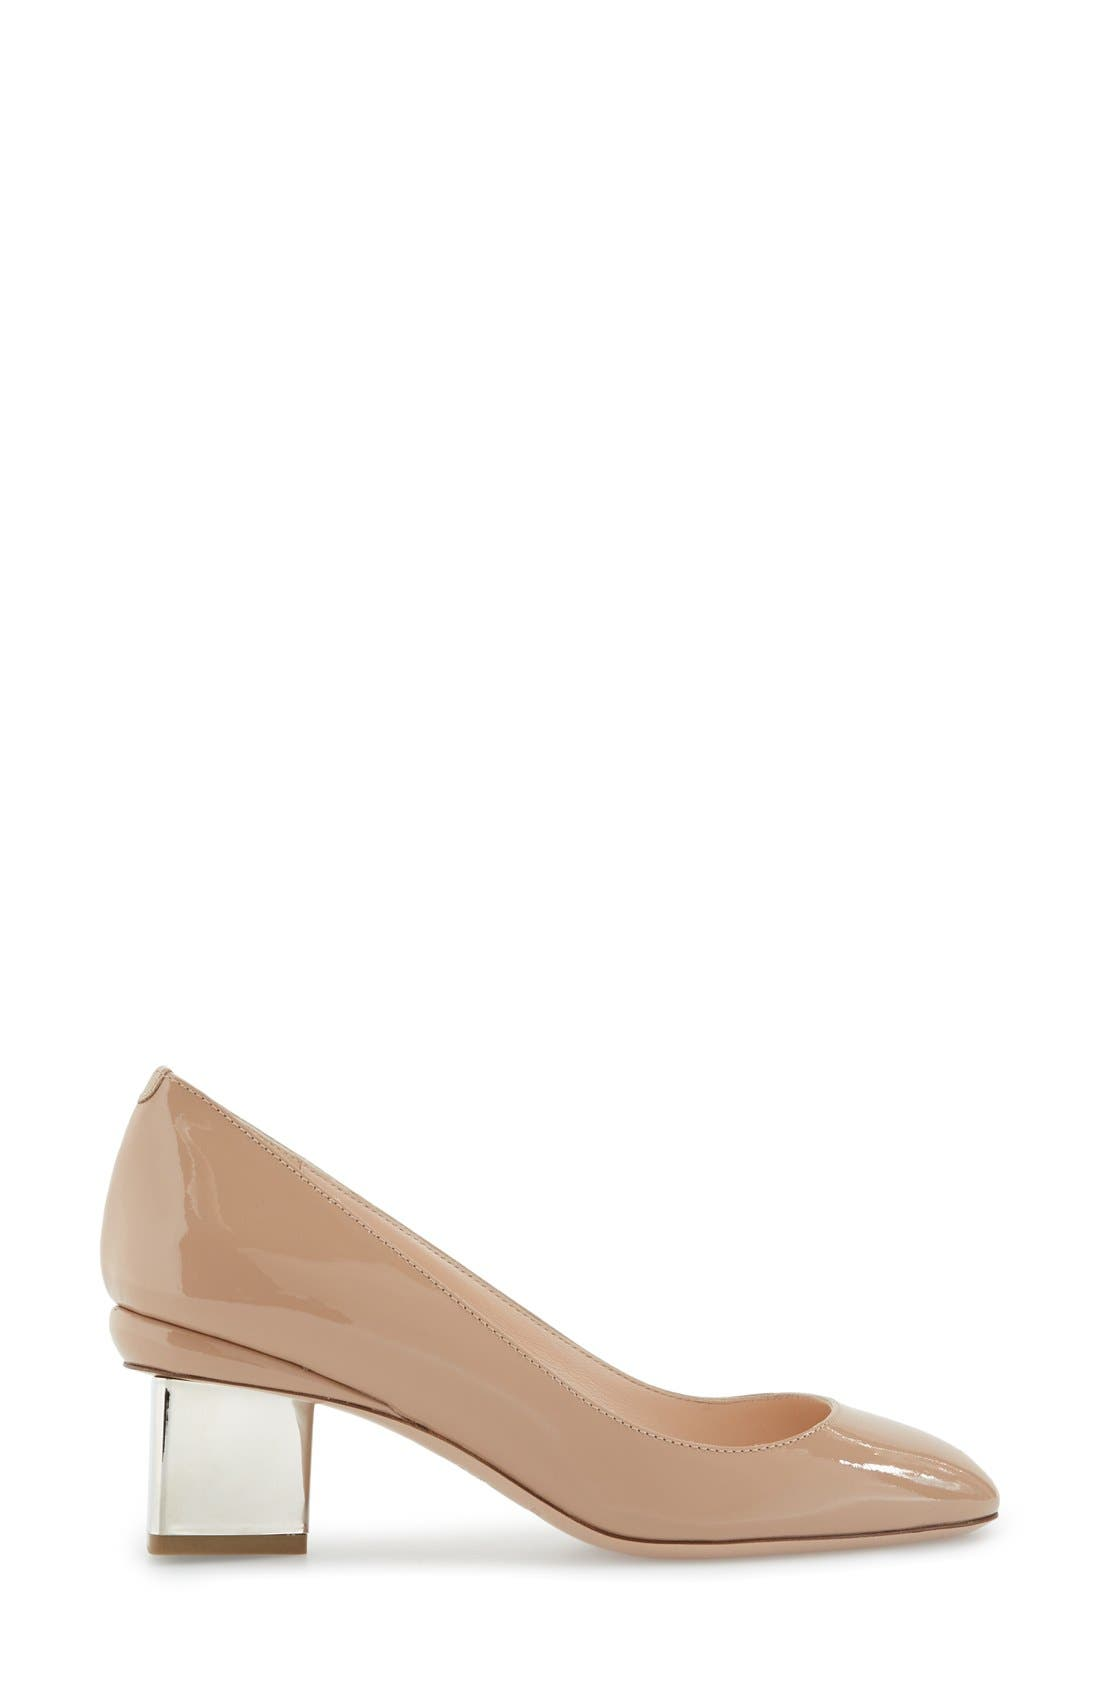 Alternate Image 5  - Nicholas Kirkwood 'Briona' Round Toe Pump (Women)